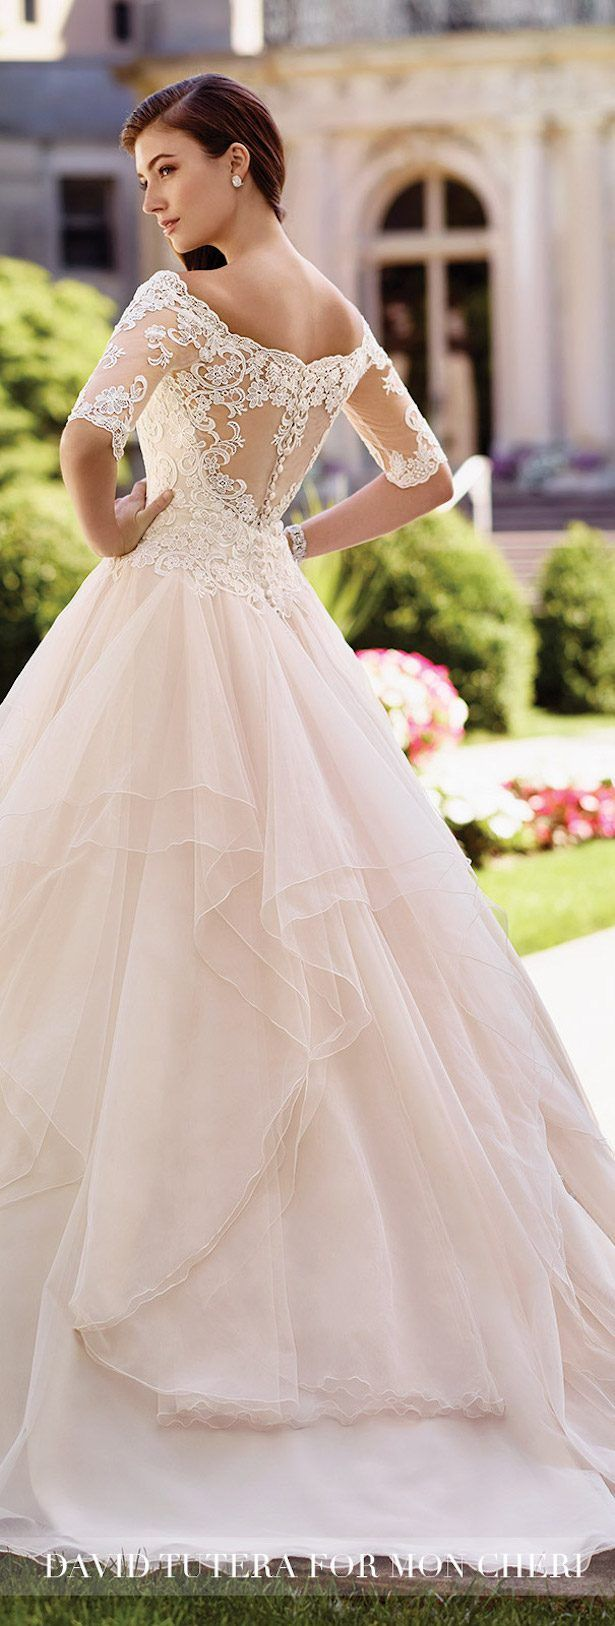 Best 25+ Wedding gowns with sleeves ideas on Pinterest | Wedding ...